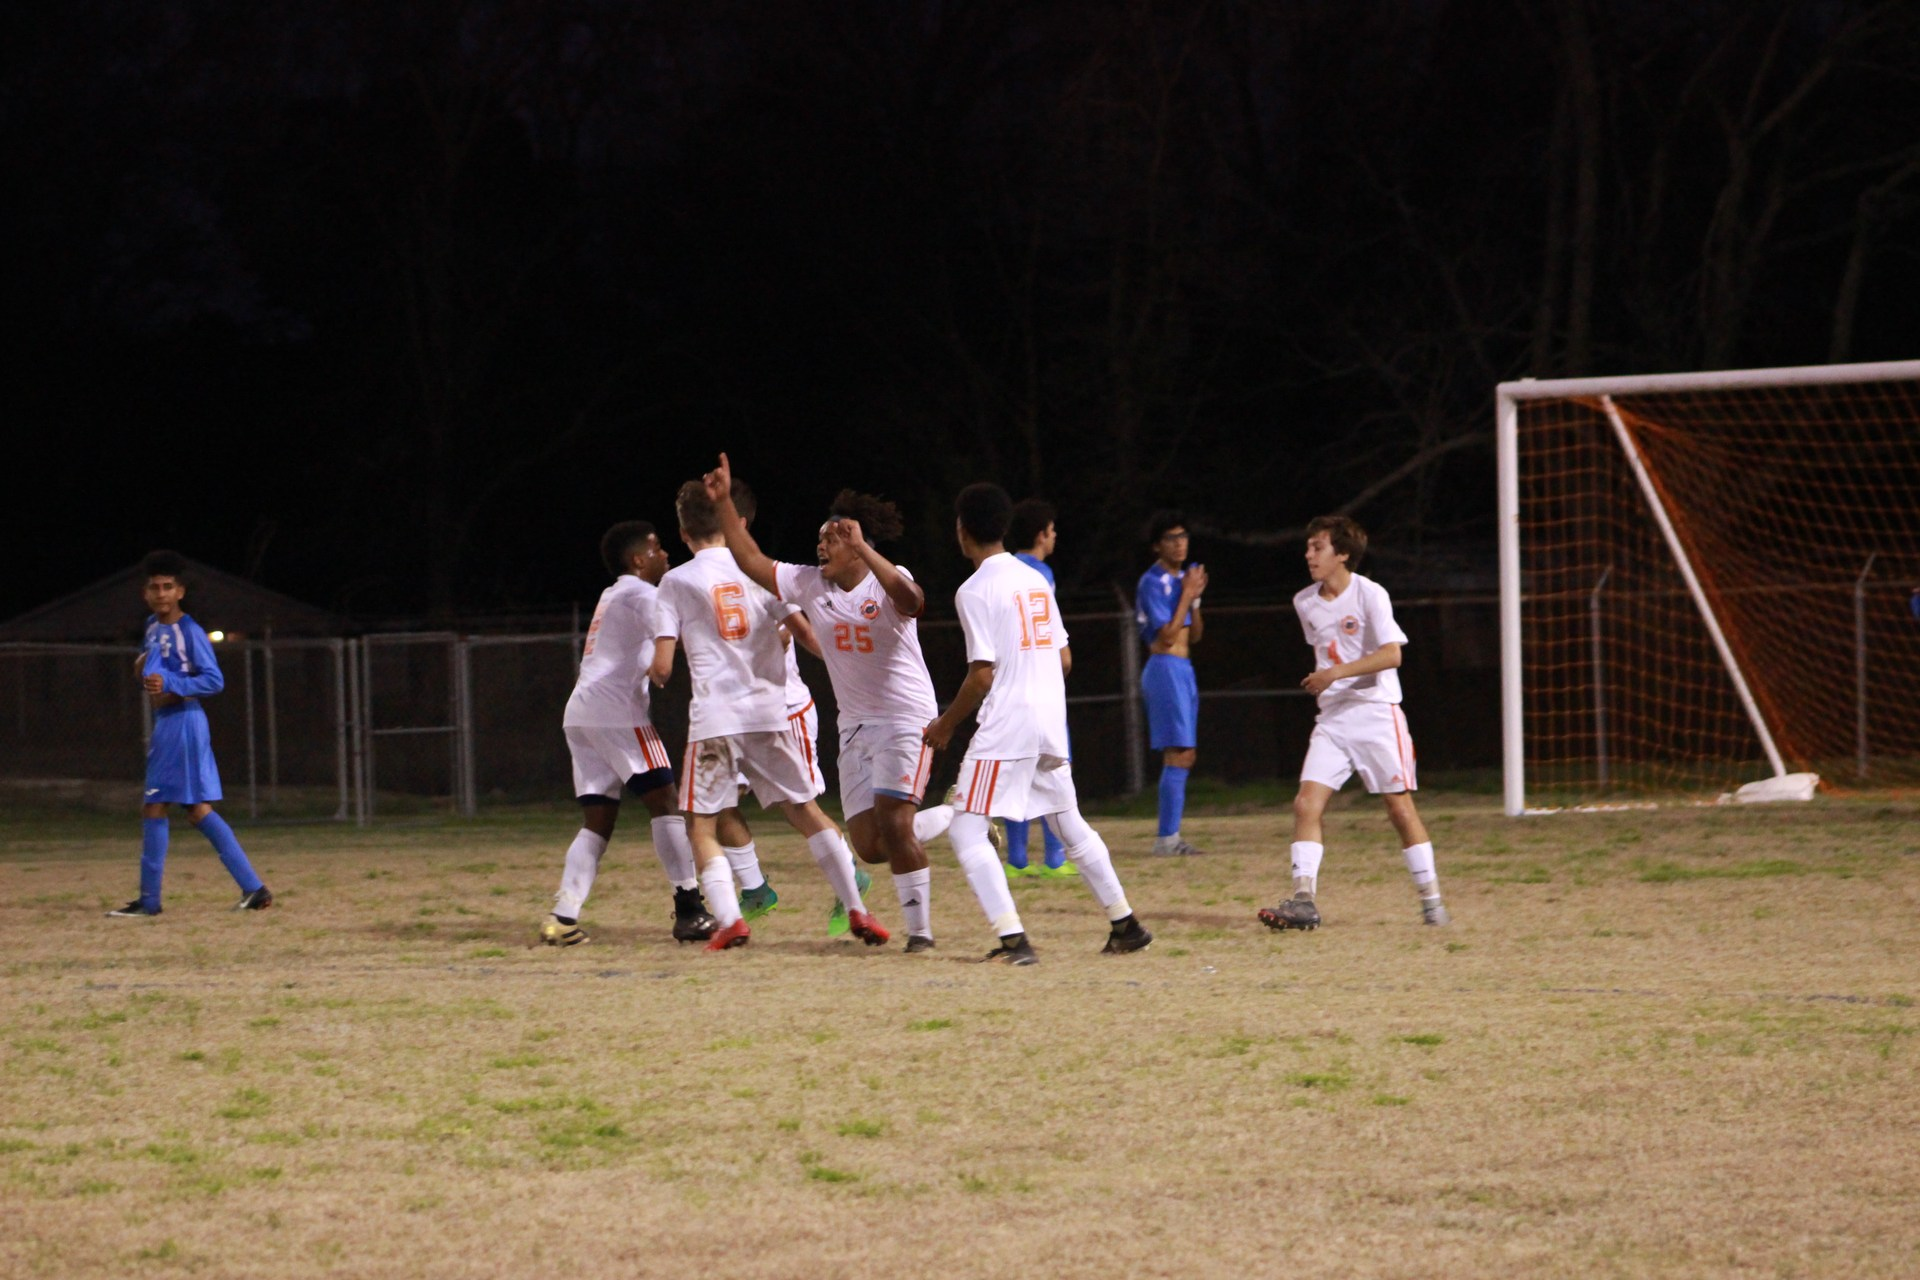 Latrell B. show excitement after the goal the team made.